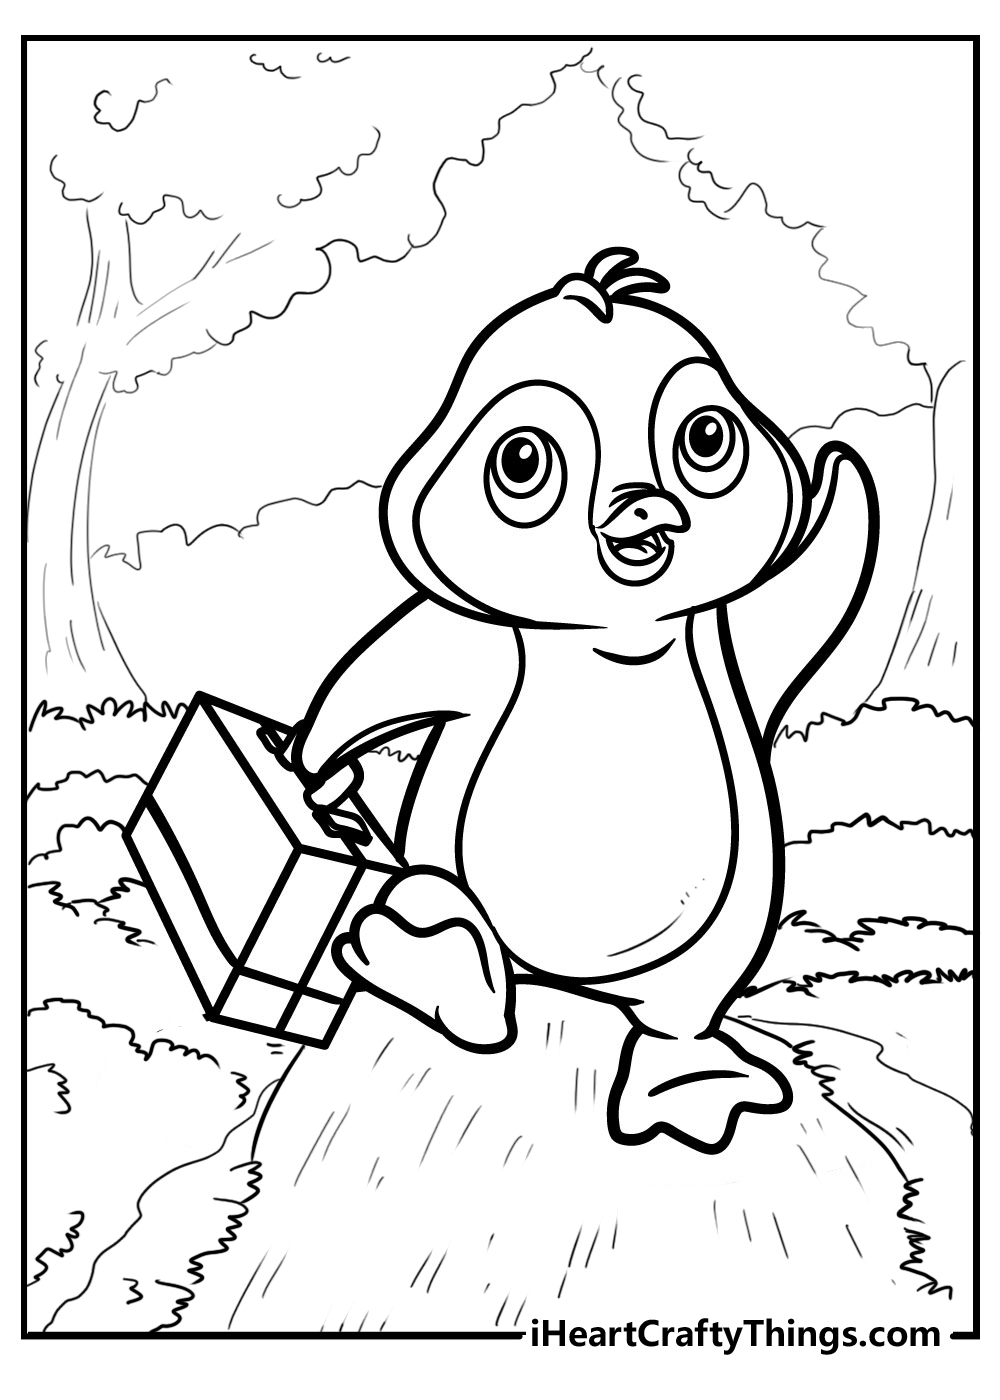 penguin colouring images free pdf